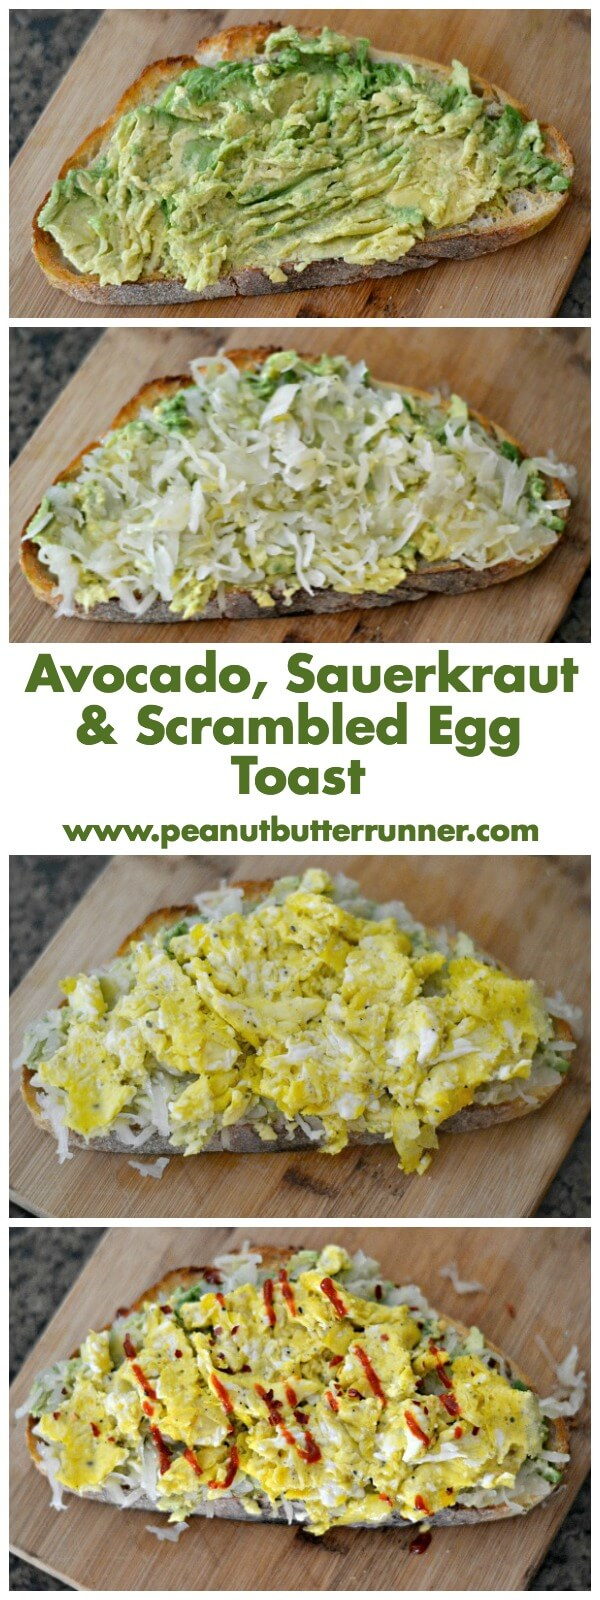 The most addictive avocado toast ever. Avocado, sauerkraut and scrambled eggs on sourdough.